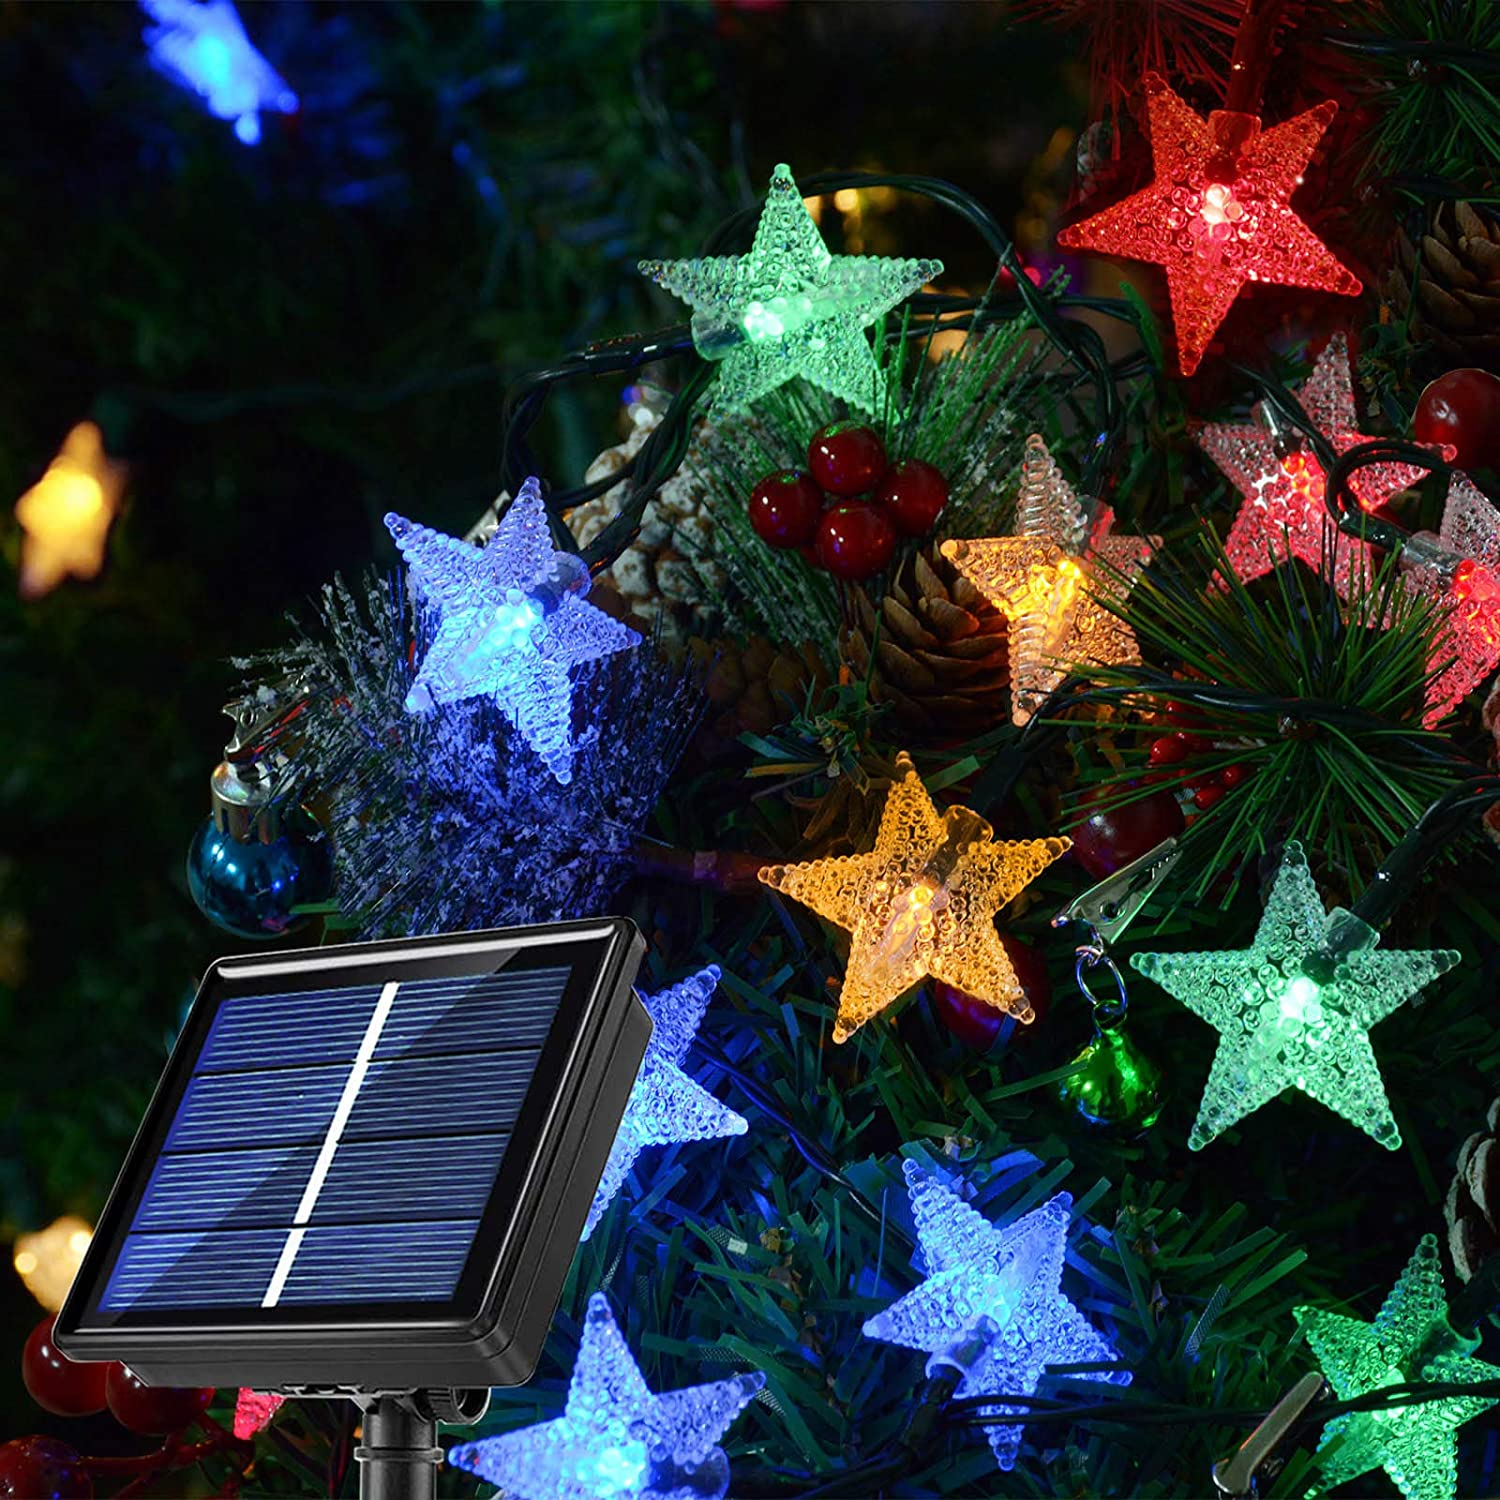 30Ft 50LEDs Solar Colored Christmas Lights Outdoor Star String Lights,8 Modes Waterproof Twinkle Fairy Solar Lights String for Outdoor Garden Patio Wedding Holiday Party Xmas Tree Decor